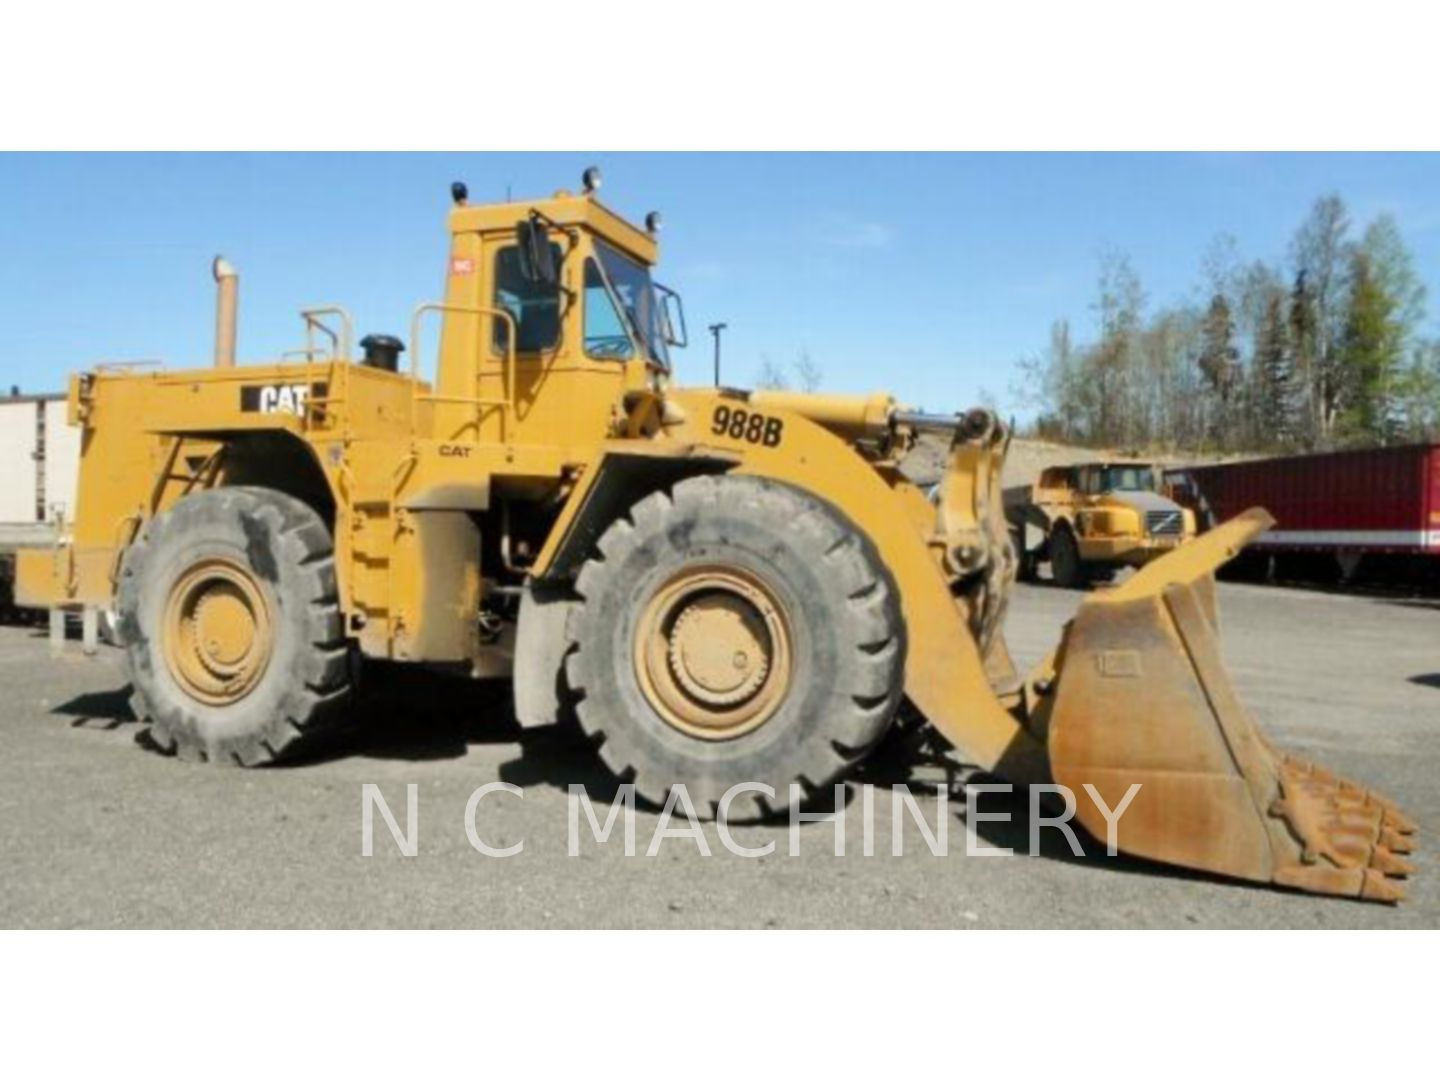 Caterpillar 988B Wheel Loaders for Sale :: Construction Equipment Guide